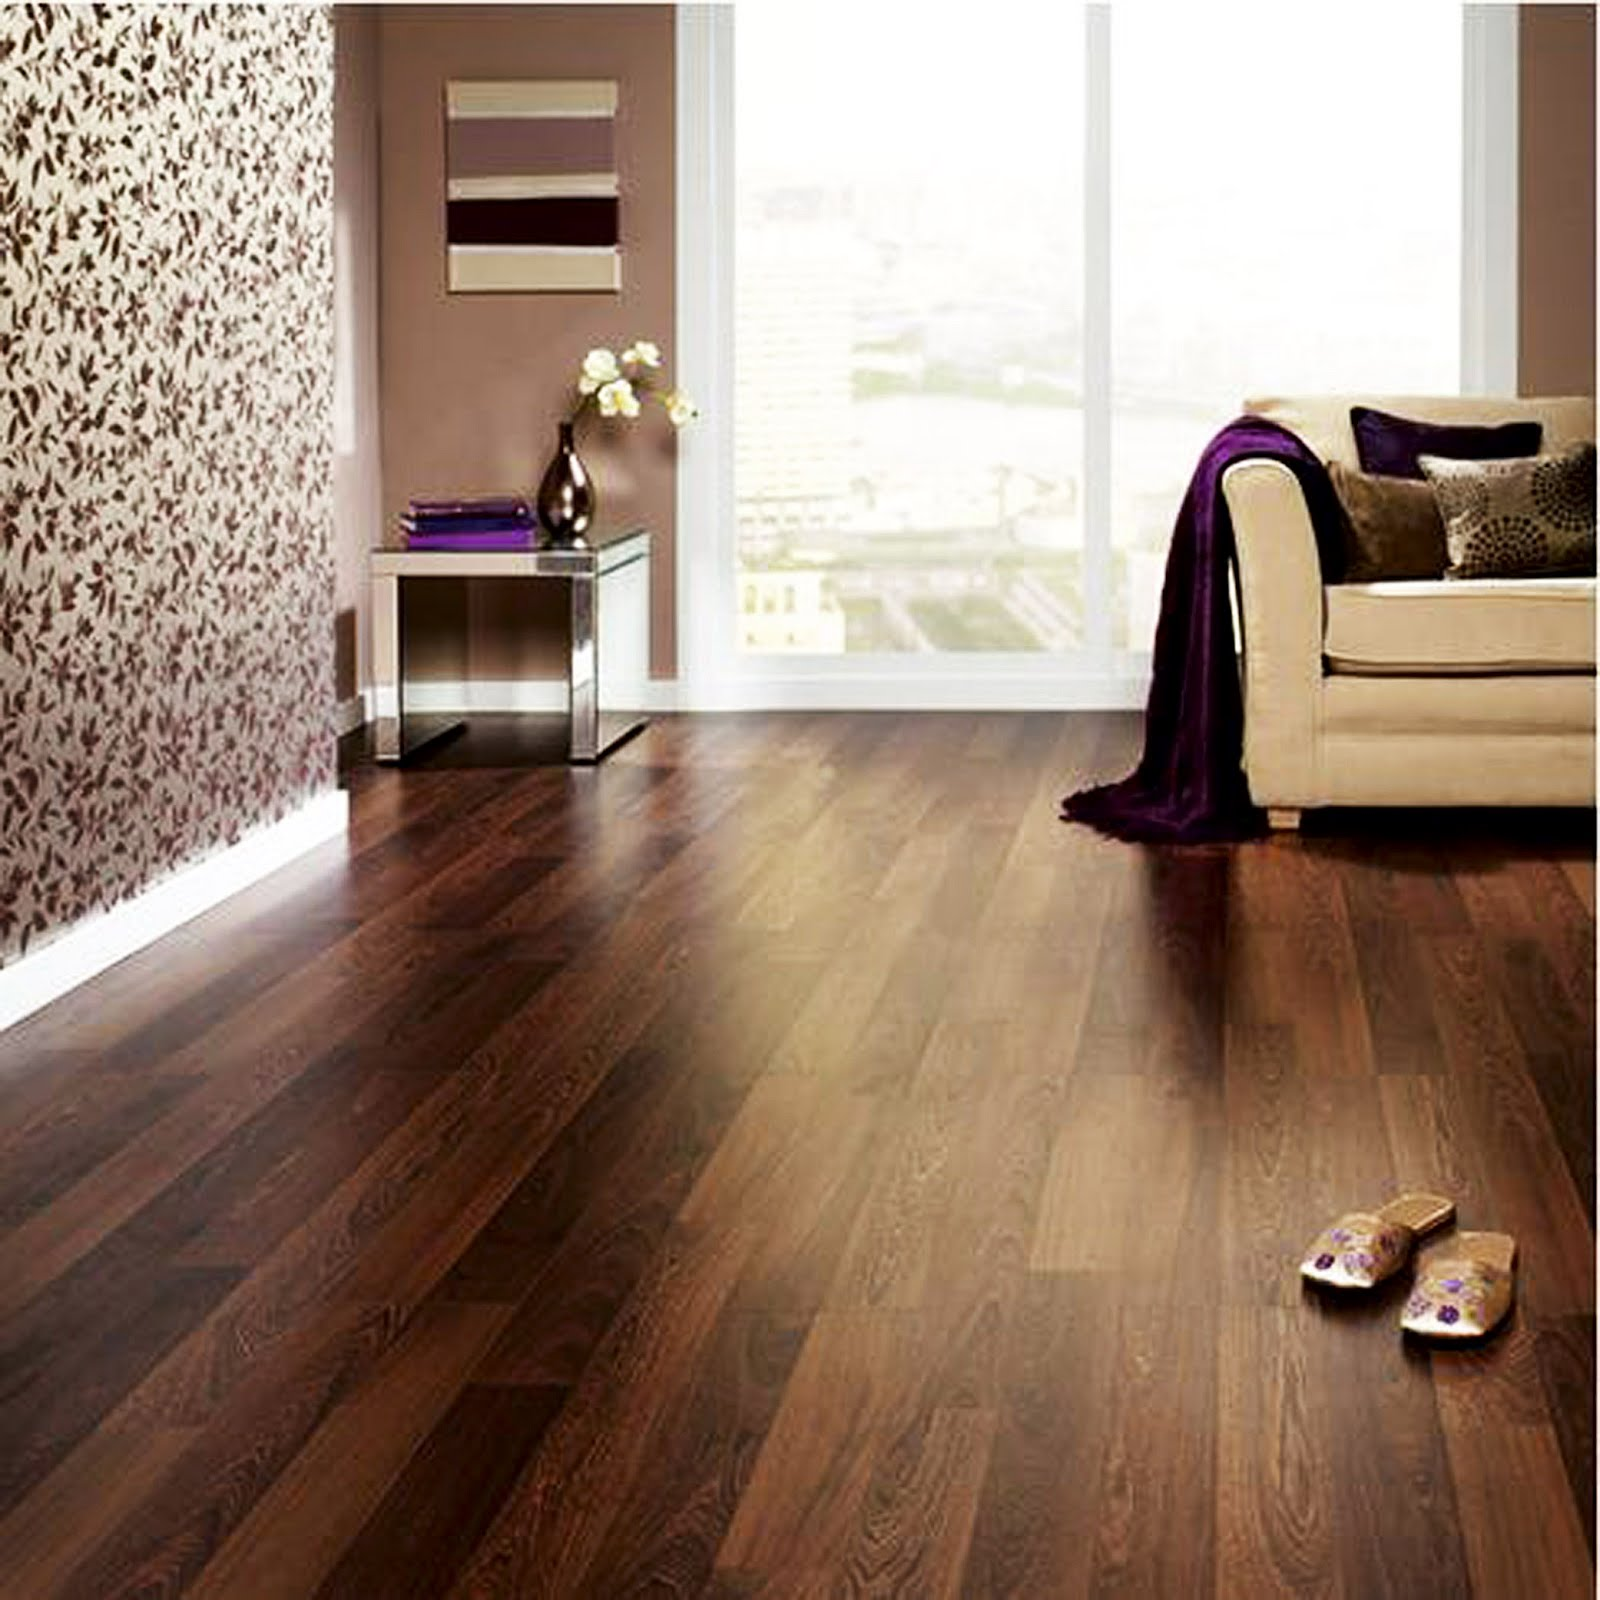 Modern laminate flooring interior decorating idea - Laminate or wood flooring ...